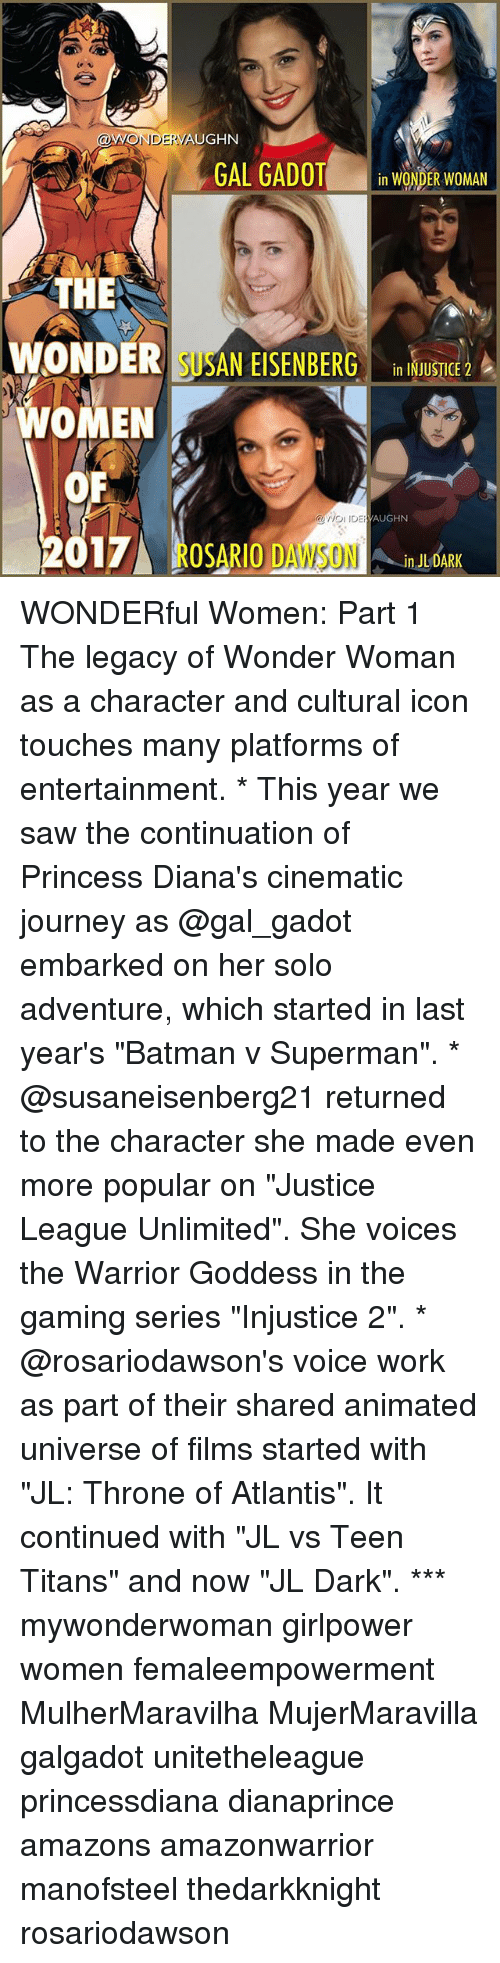 """Batman, Journey, and Memes: VAUGHN  AONDERVA  GAL GADOT  in WONDER WOMAN  THE  WONDER SUSAN EISENBERG  in INJUSTICE 2  WOMEN  OF  VAUGHN  DE OSARIO DAWSON  2017  ULDARK WONDERful Women: Part 1 The legacy of Wonder Woman as a character and cultural icon touches many platforms of entertainment. * This year we saw the continuation of Princess Diana's cinematic journey as @gal_gadot embarked on her solo adventure, which started in last year's """"Batman v Superman"""". * @susaneisenberg21 returned to the character she made even more popular on """"Justice League Unlimited"""". She voices the Warrior Goddess in the gaming series """"Injustice 2"""". * @rosariodawson's voice work as part of their shared animated universe of films started with """"JL: Throne of Atlantis"""". It continued with """"JL vs Teen Titans"""" and now """"JL Dark"""". *** mywonderwoman girlpower women femaleempowerment MulherMaravilha MujerMaravilla galgadot unitetheleague princessdiana dianaprince amazons amazonwarrior manofsteel thedarkknight rosariodawson"""